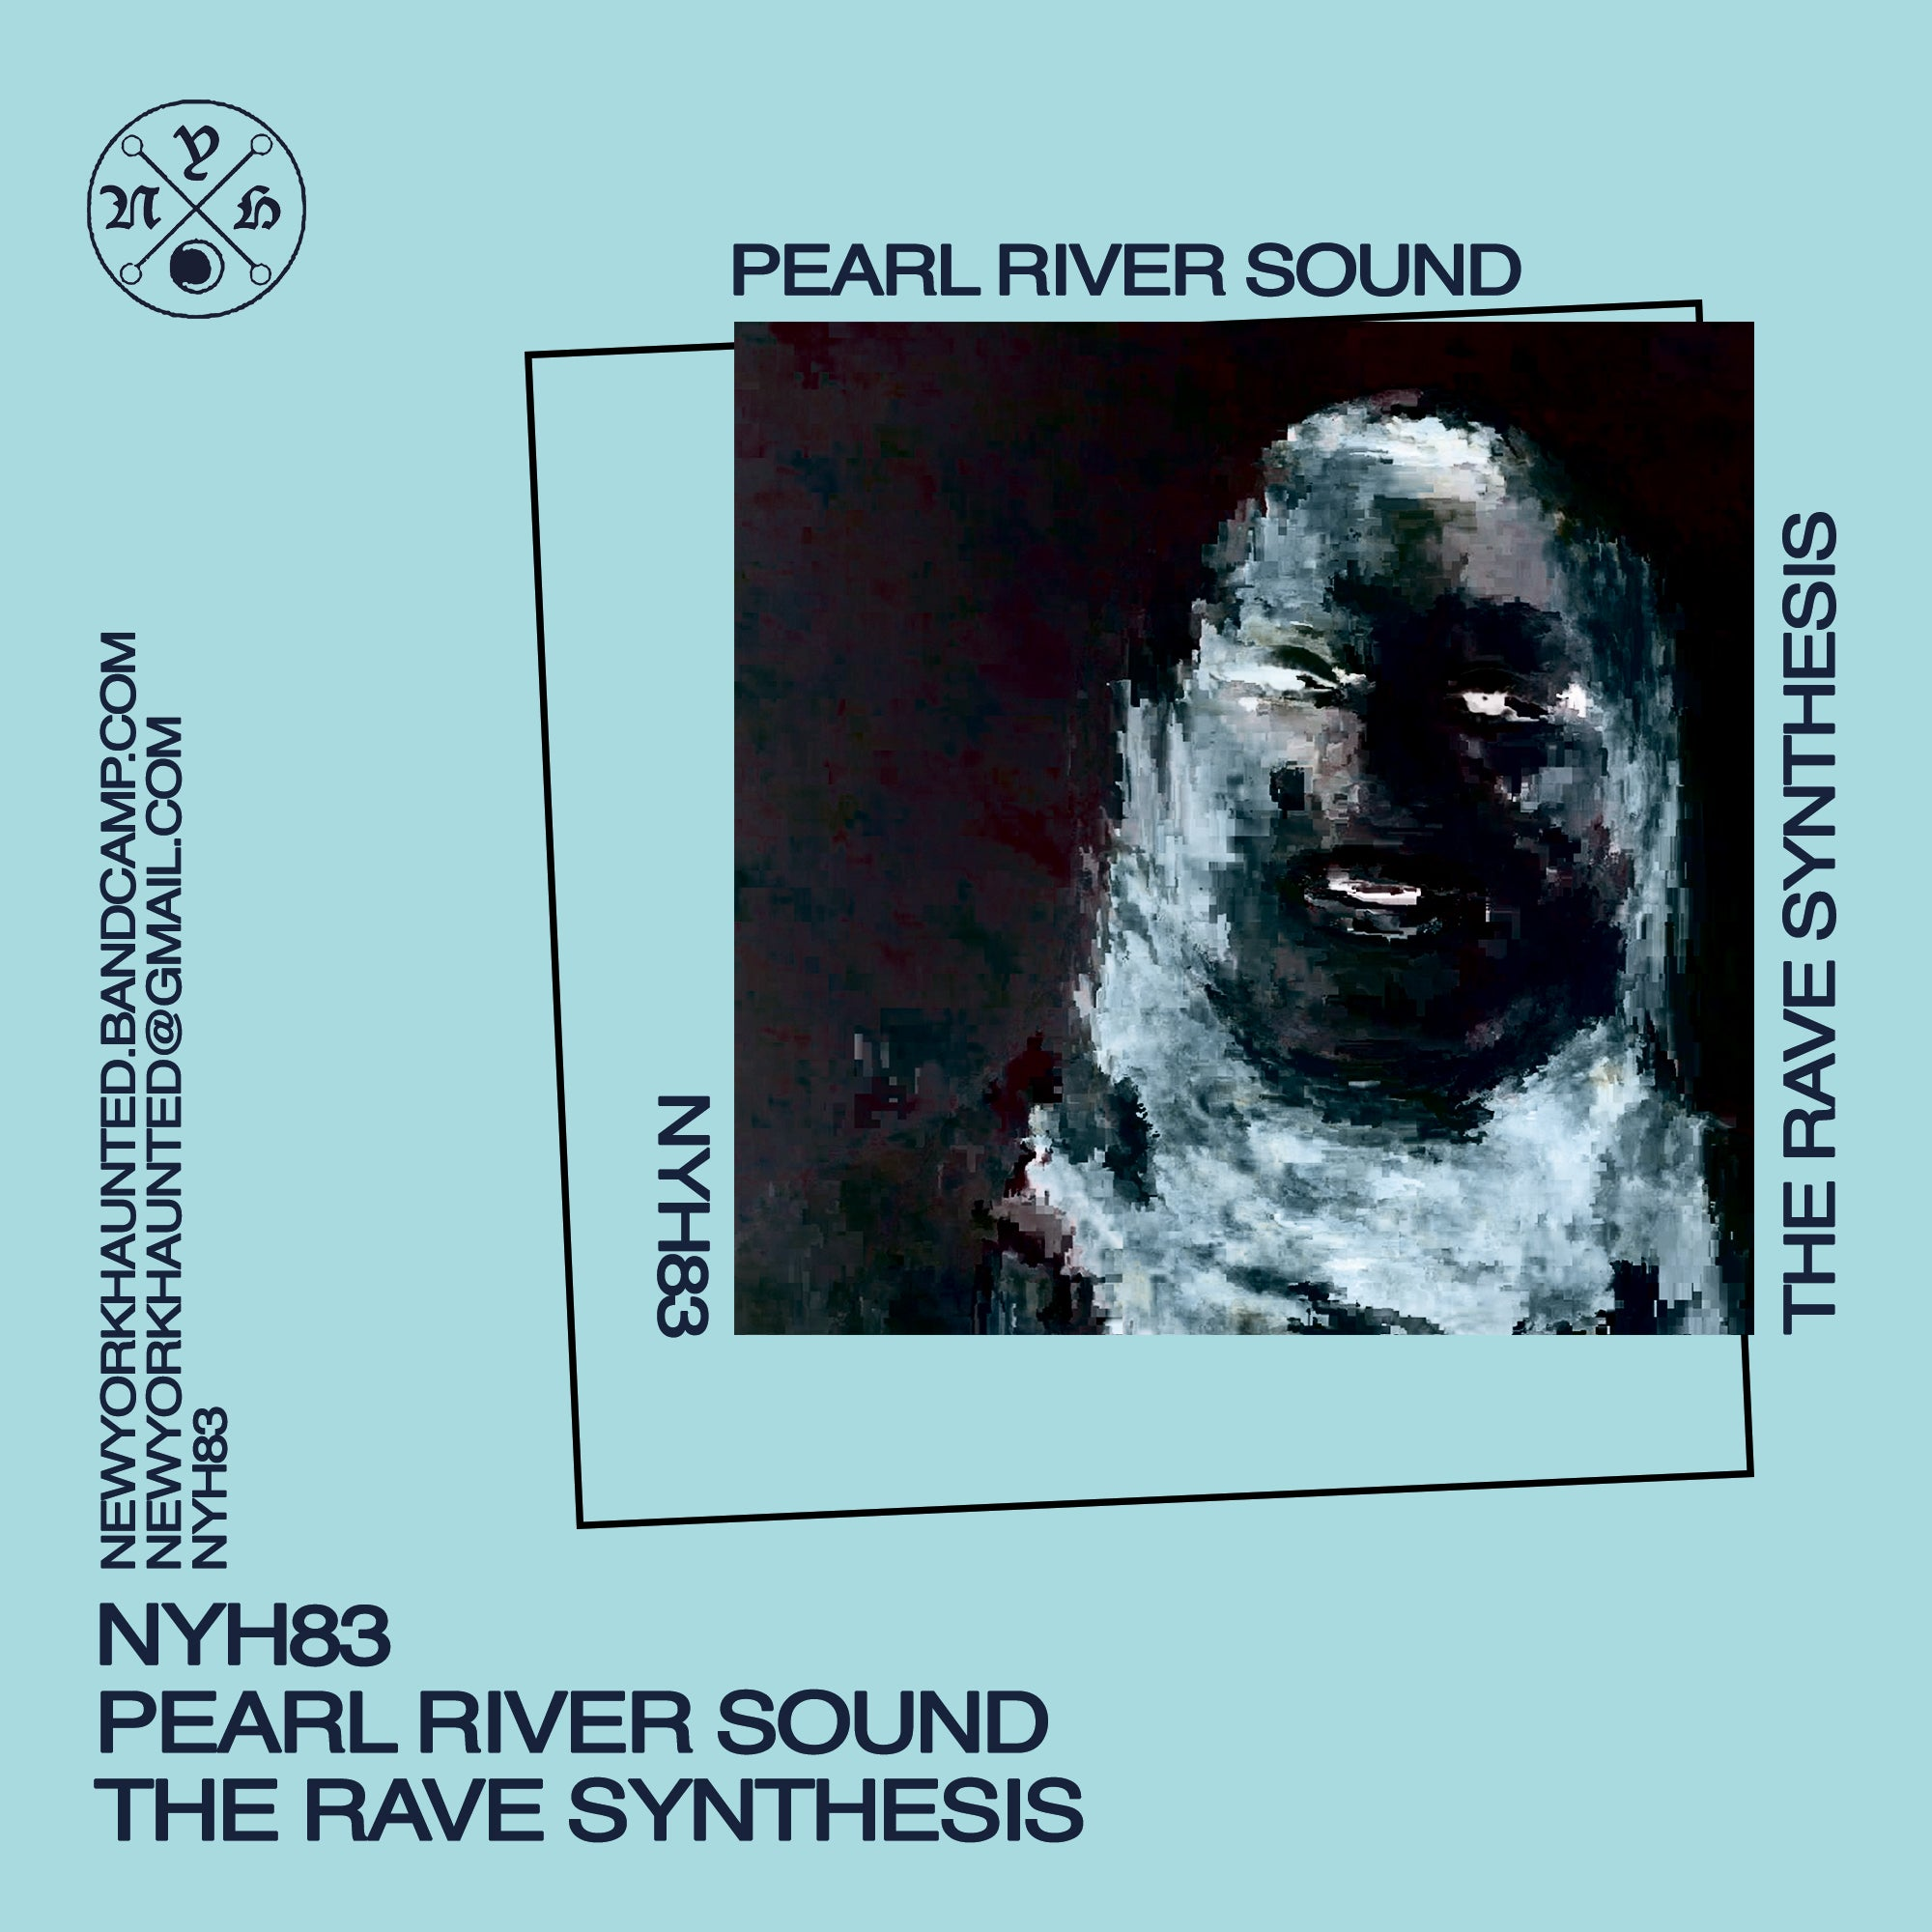 Pearl River Sound - The Rave Synthesis [Cassette]